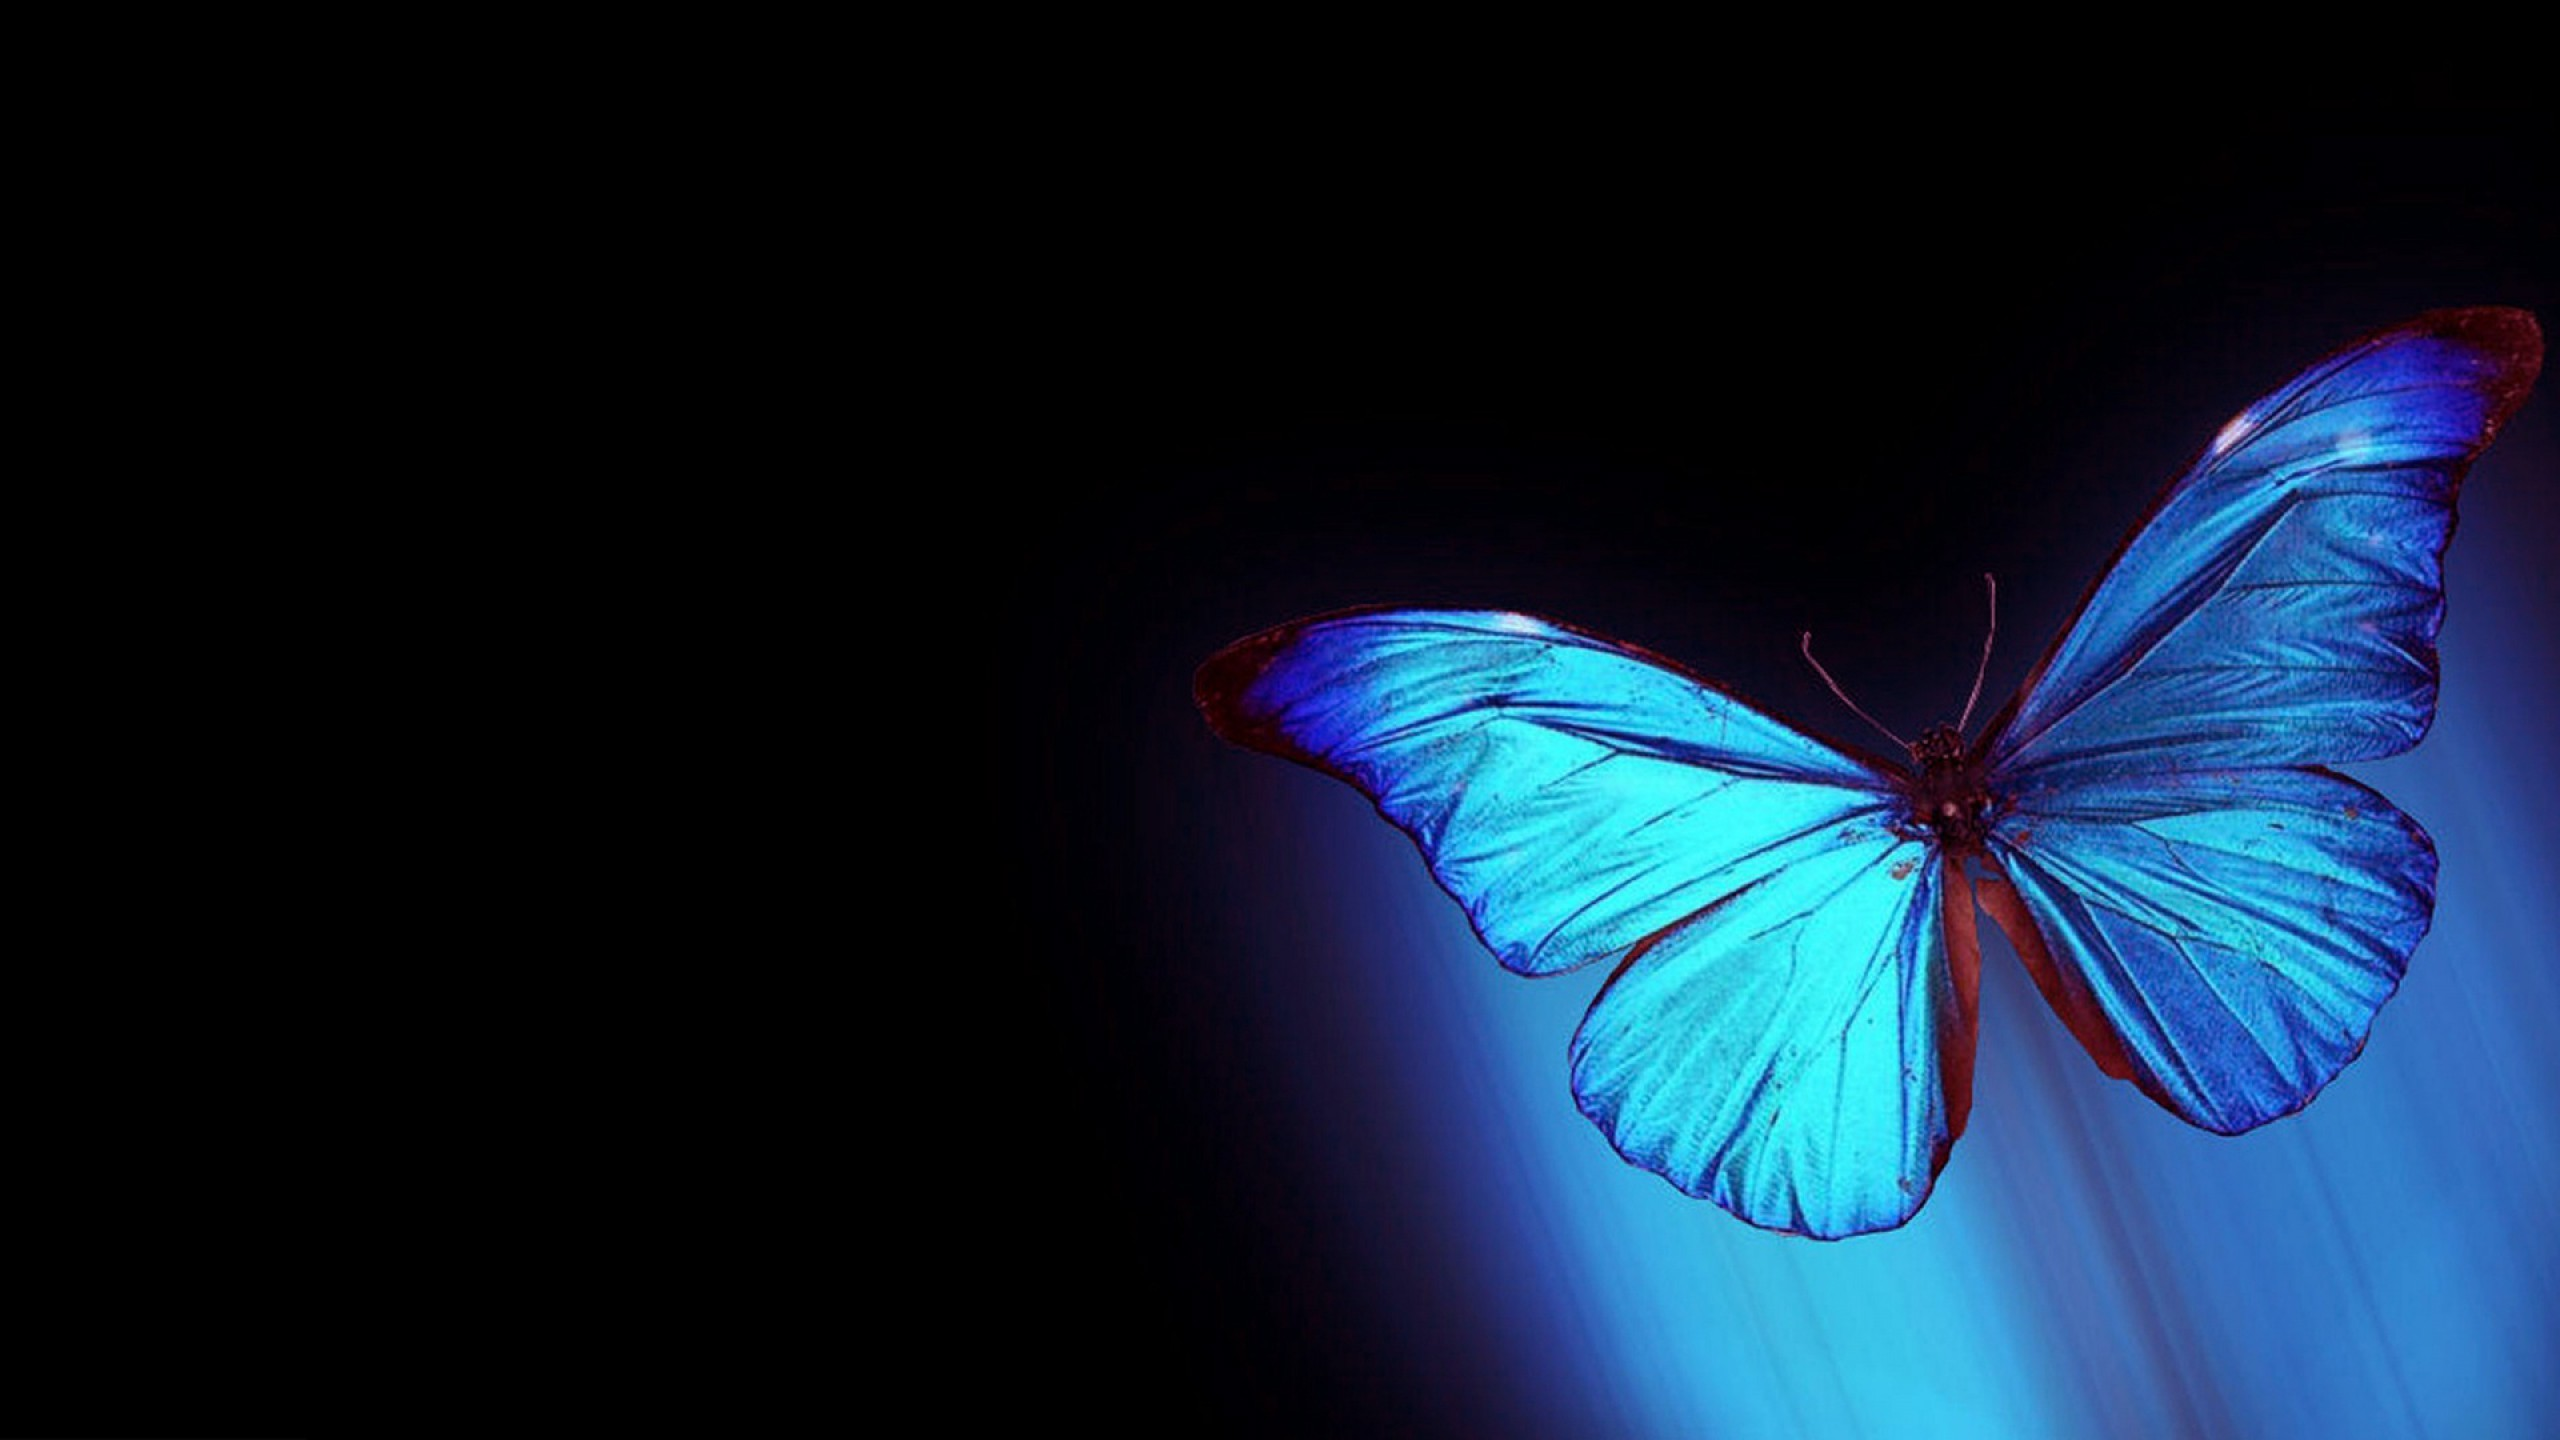 Black Butterfly Wallpaper 68 Images